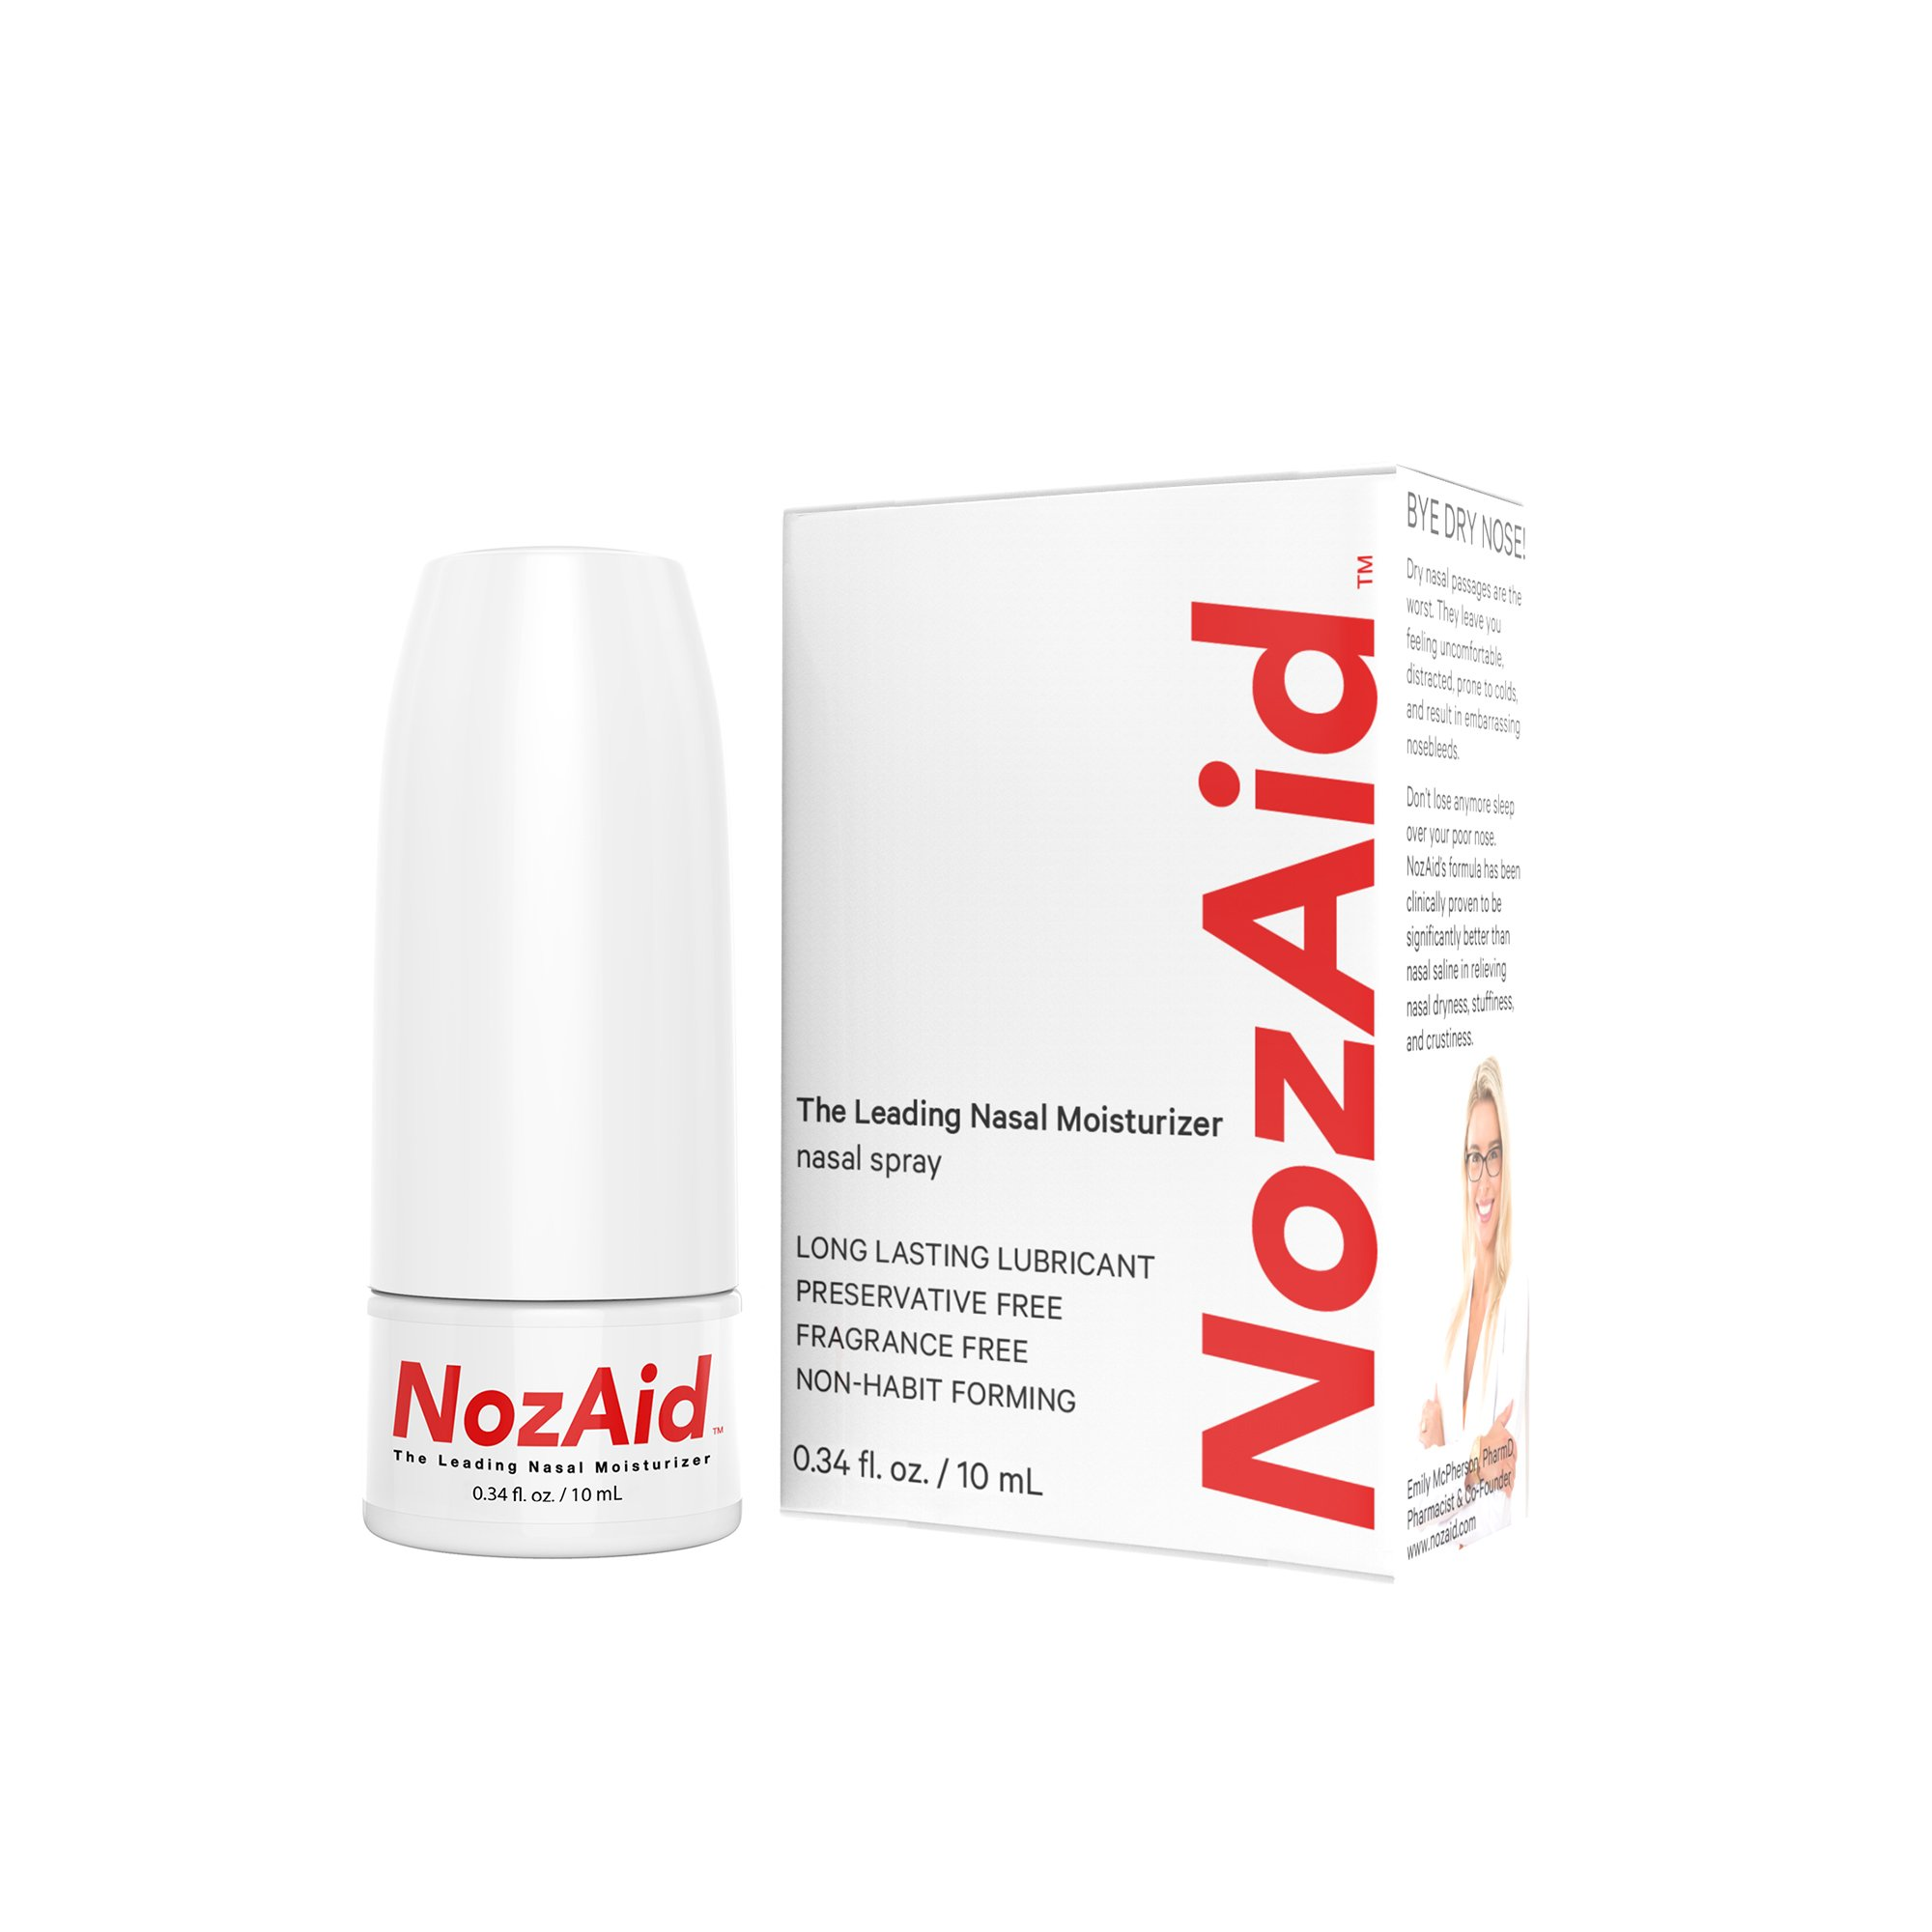 Nasal Spray Moisturizer with Sesame Oil .34 Ounce - Moisturizing Lubricant for Dry, Crusty, Cracked, Stuffy Nose Relief, Nosebleeds, Clear Breathing - Fragrance and Preservative Free by NozAid by NozAid (Image #2)